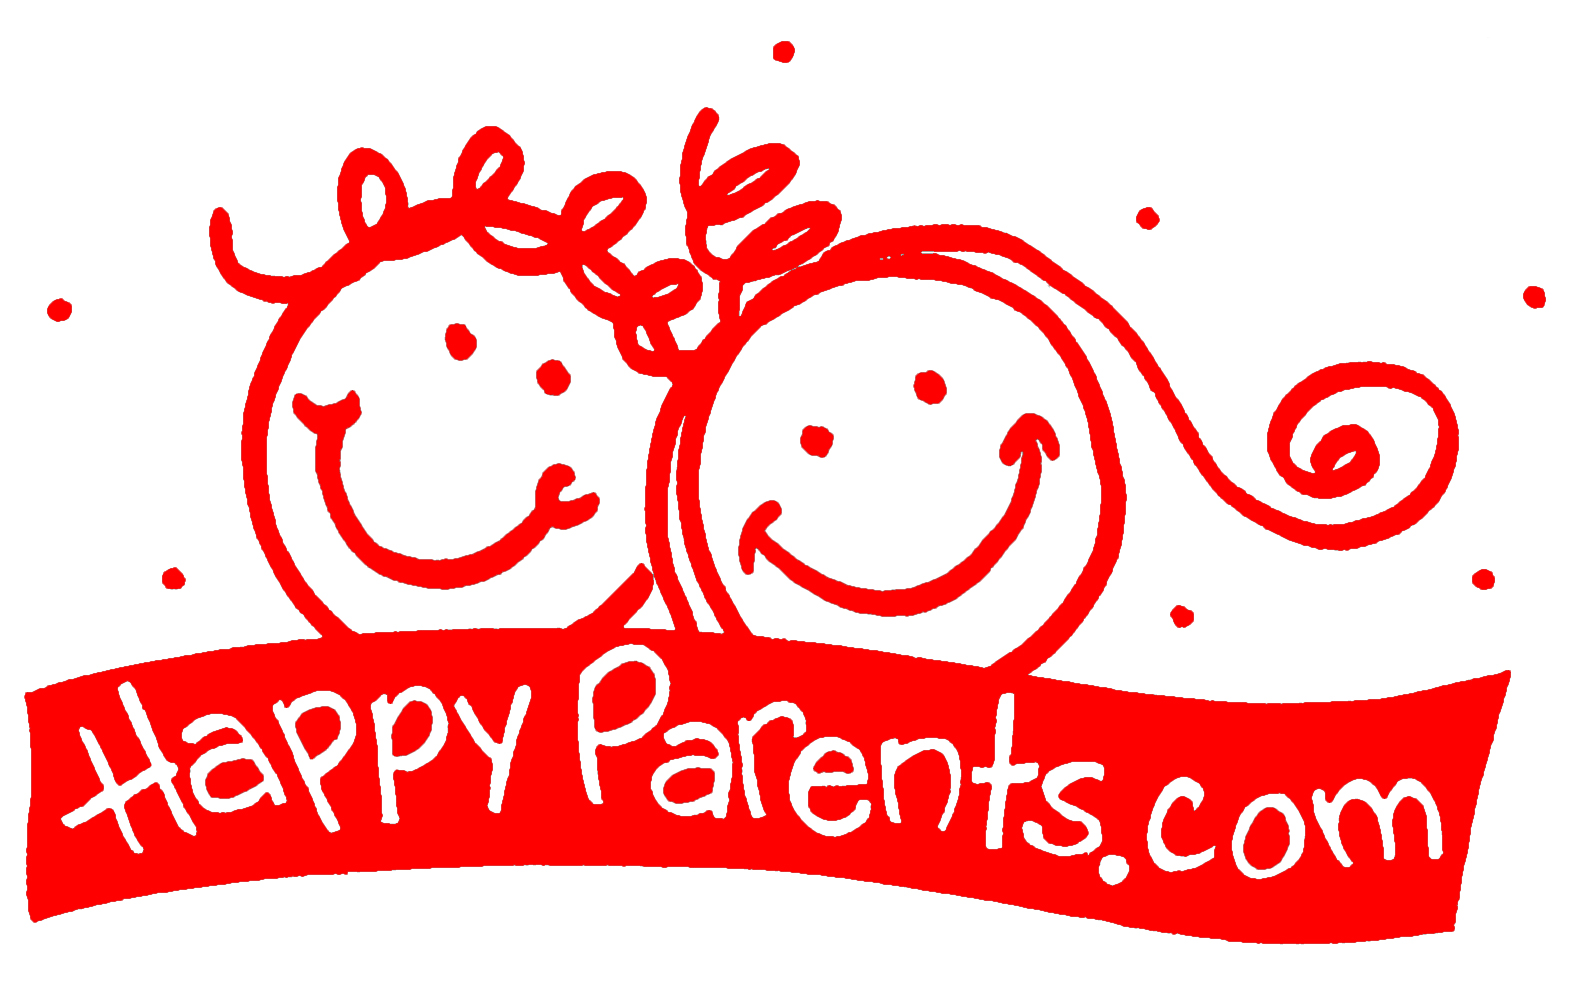 www.happyparents.com